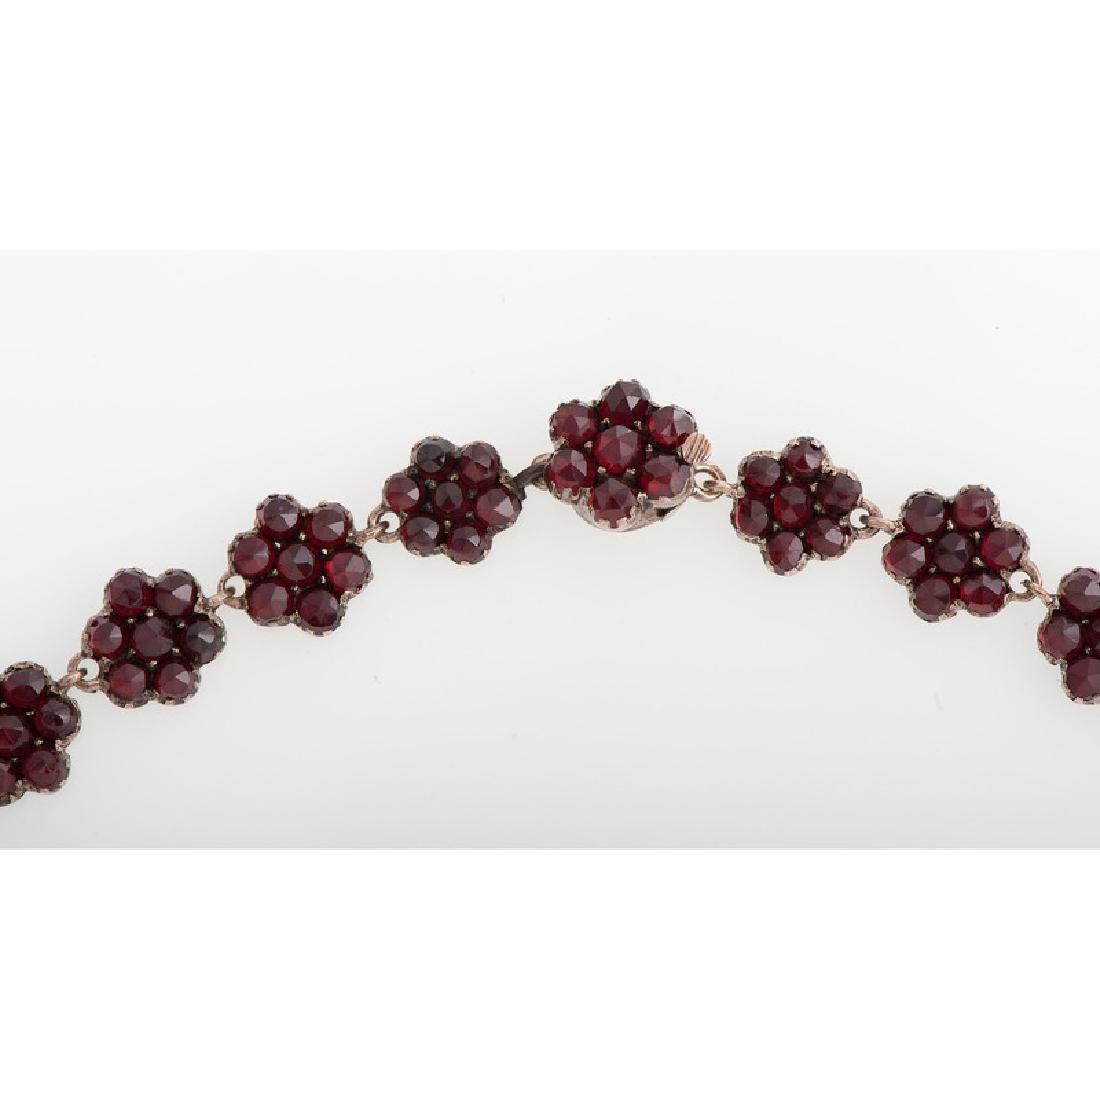 Gilt Metal Bohemian Garnet Necklace - 4